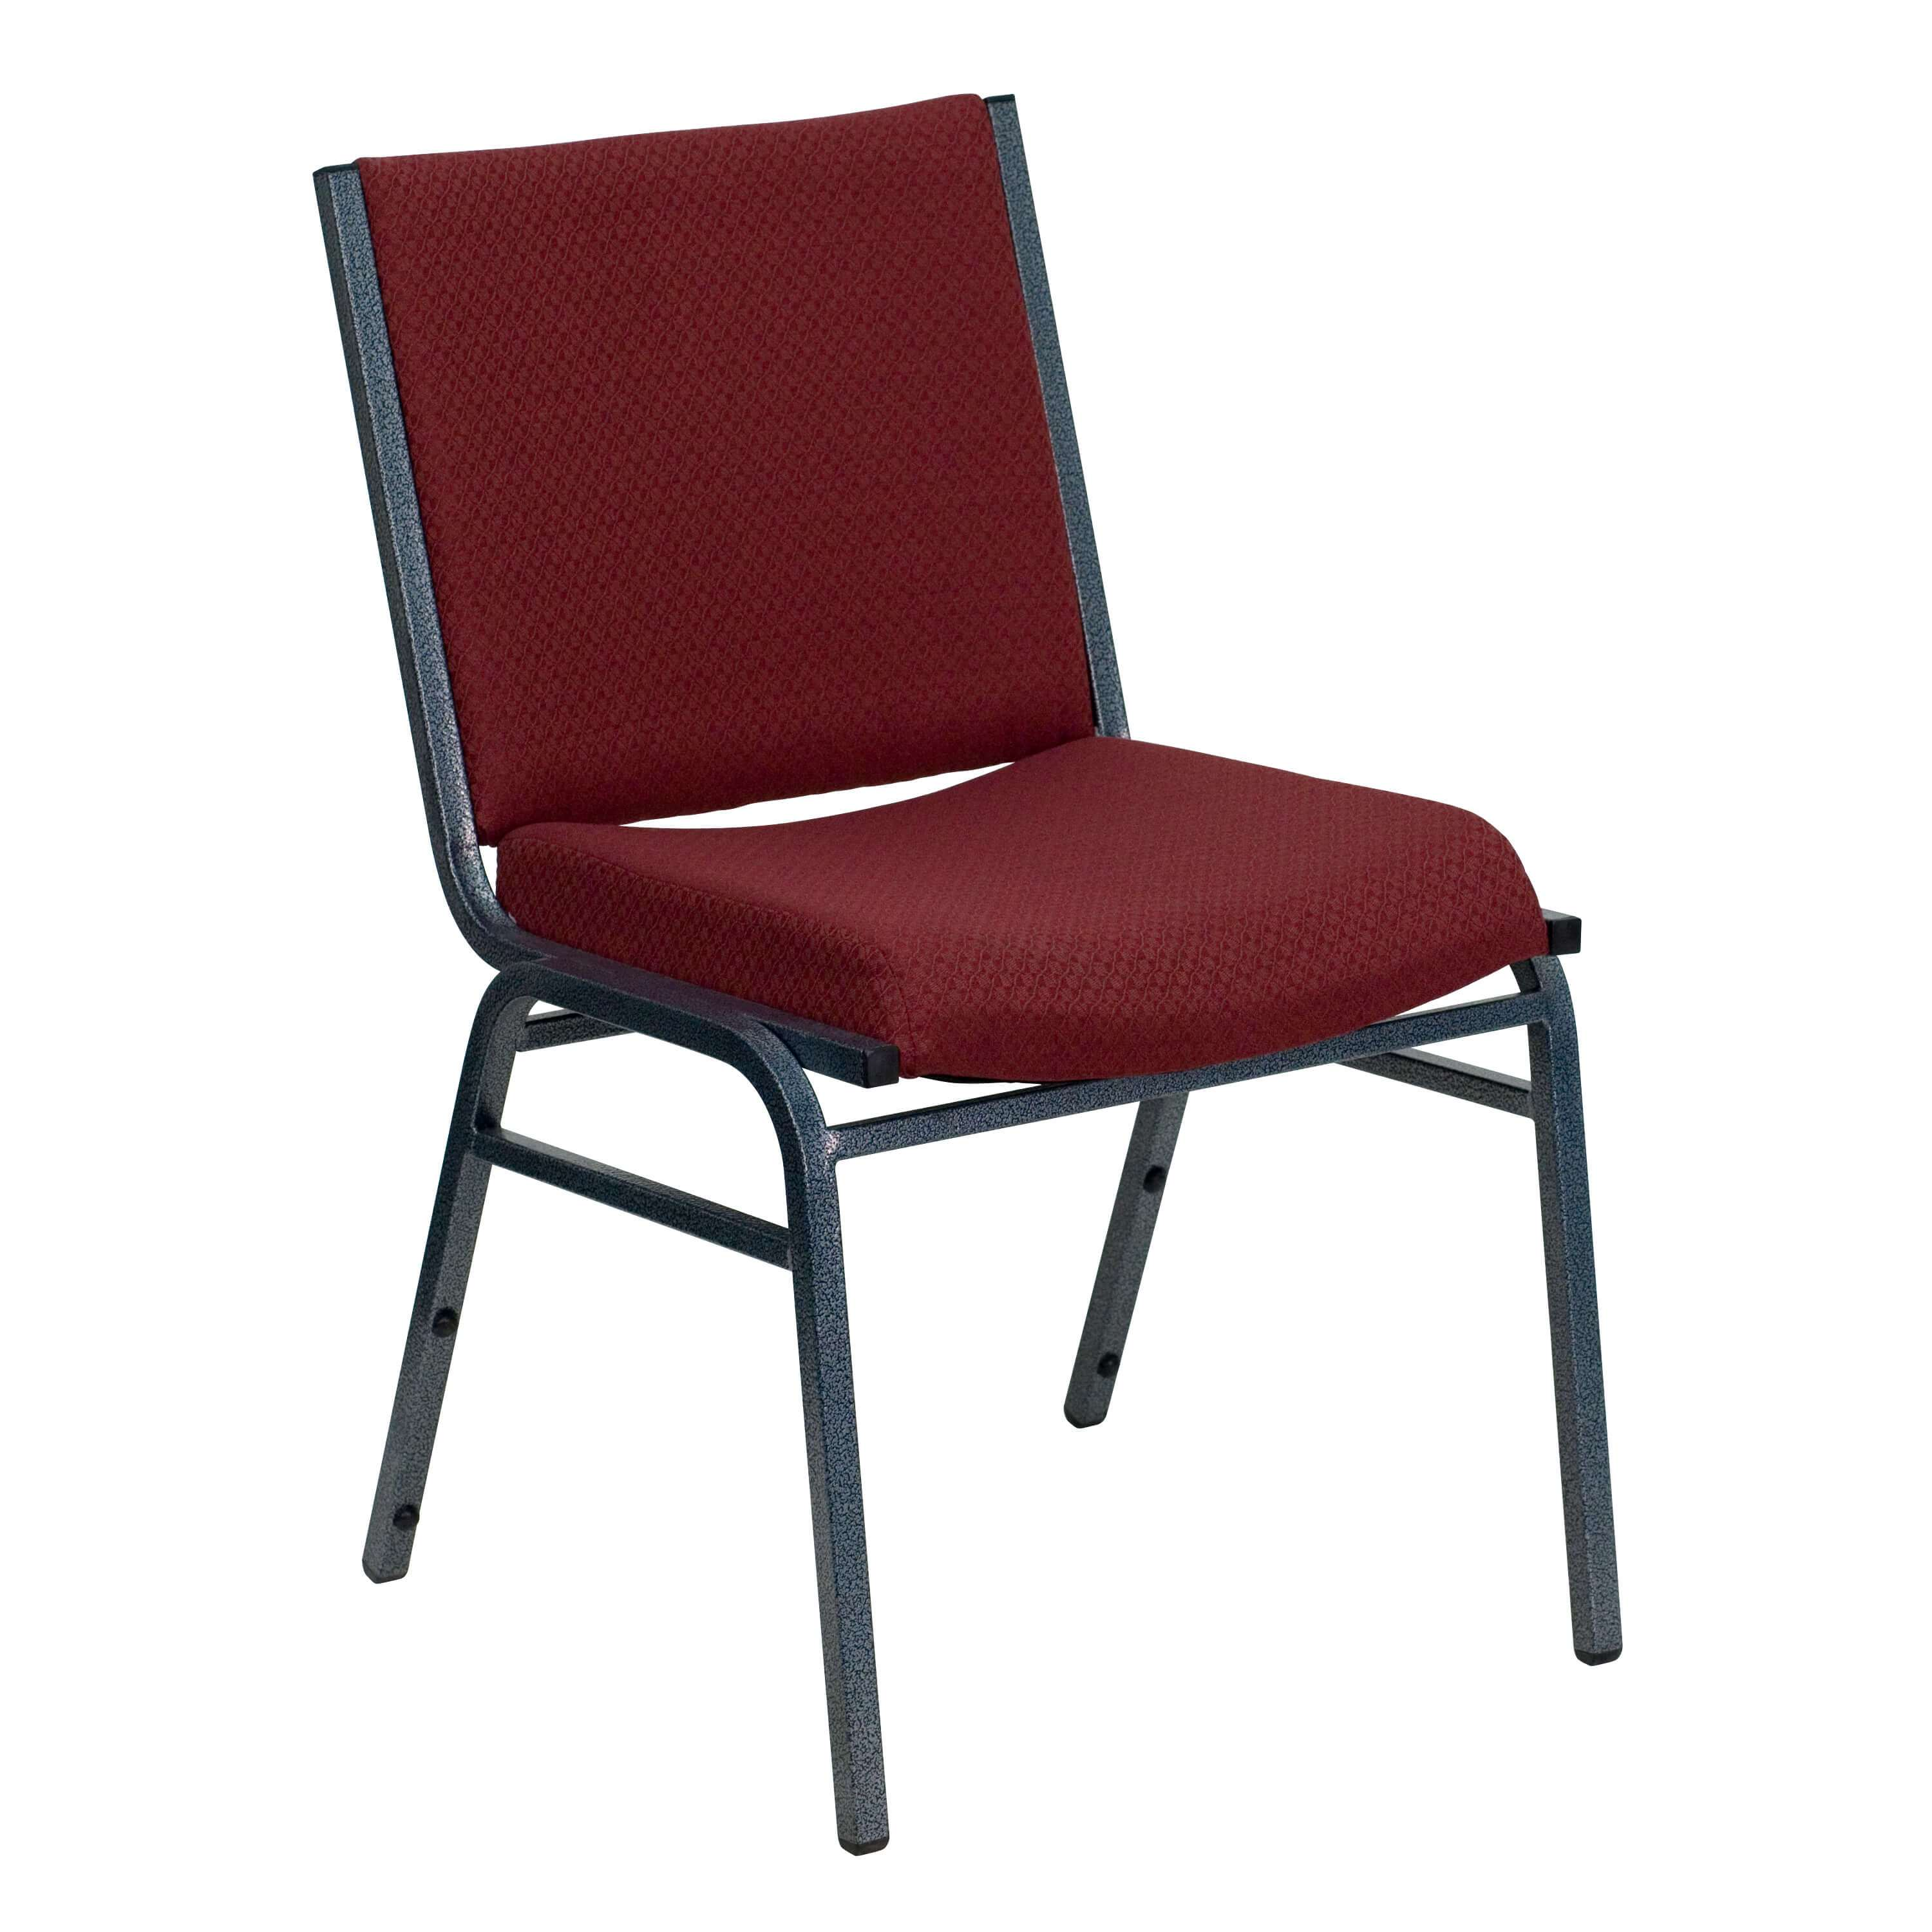 Stackable chairs CUB XU 60153 BY GG FLA